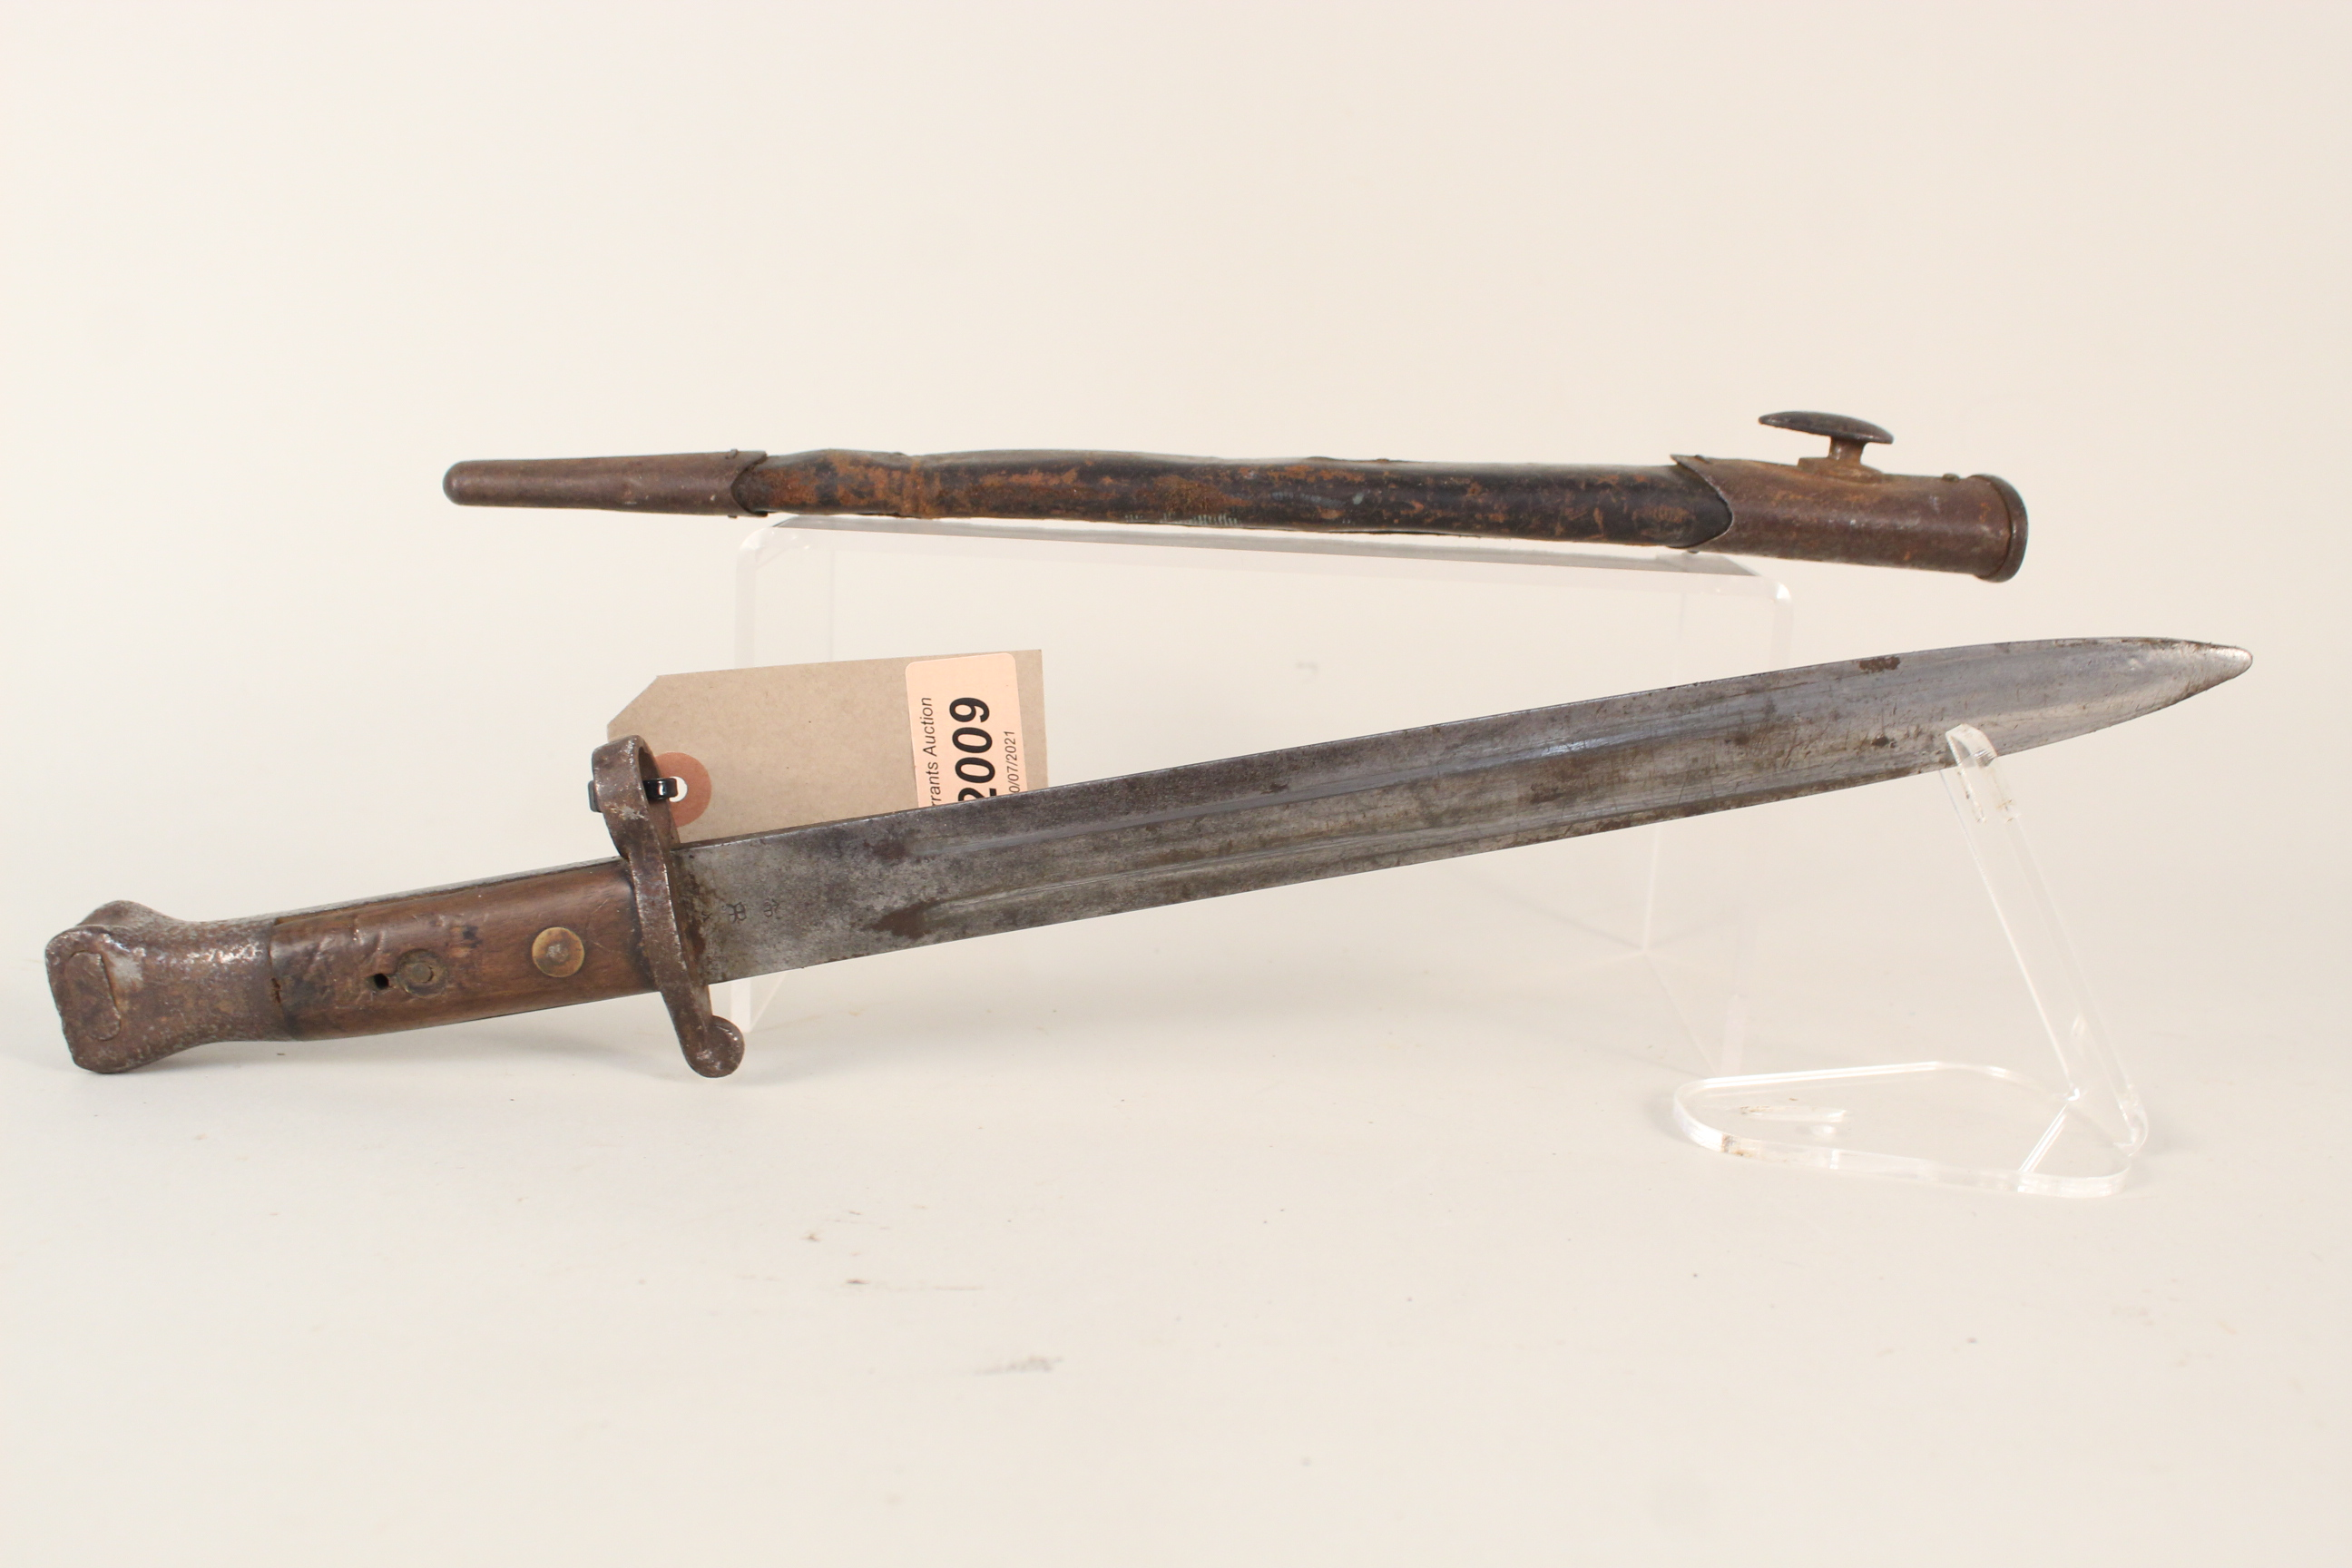 A British 1888 model bayonet (Mk I 2nd type) by Mole with scabbard (in overall worn condition)